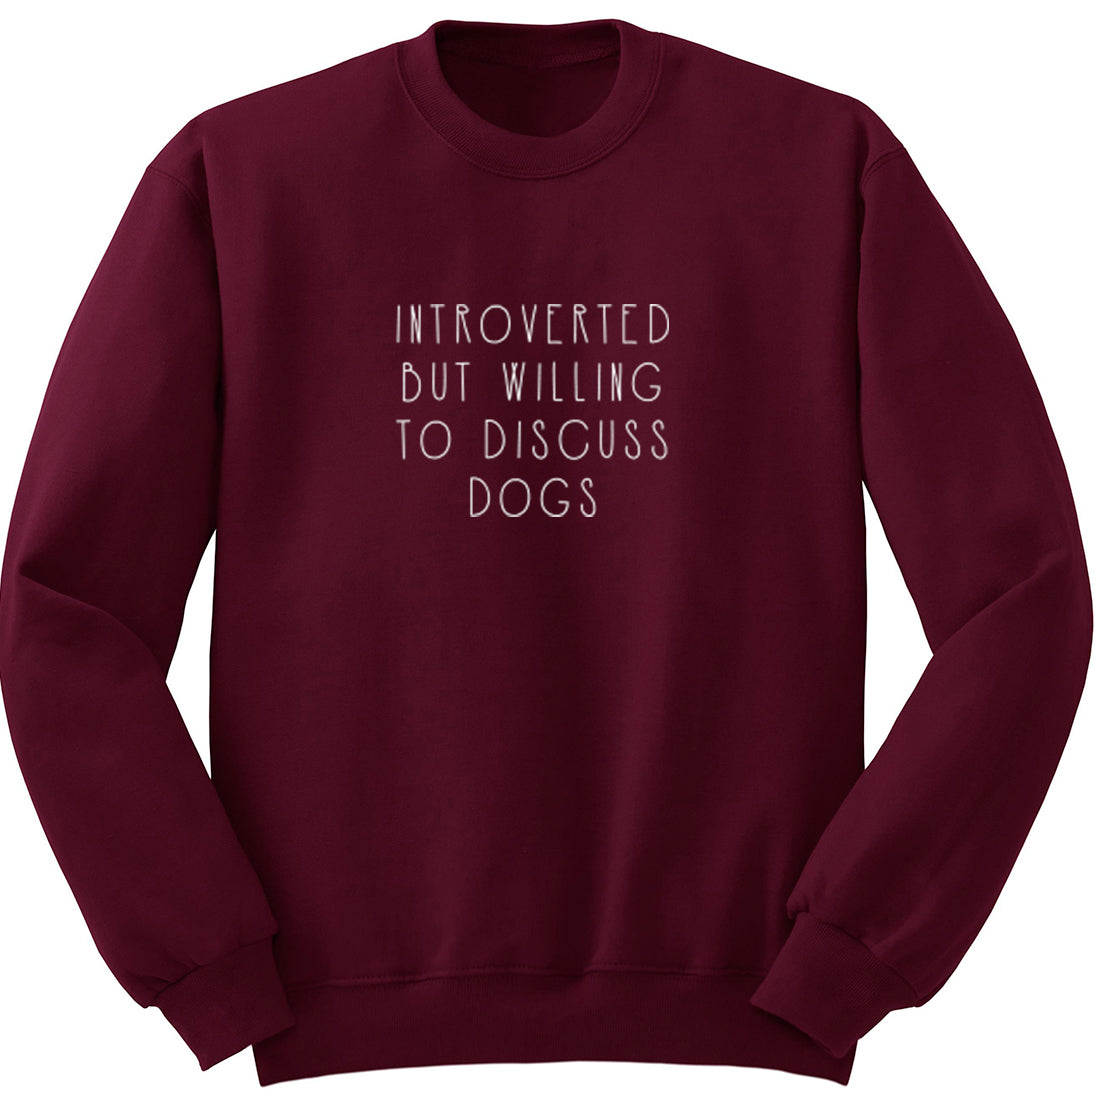 Introverted But Willing To Discuss Dogs Unisex Jumper K2496 - Illustrated Identity Ltd.